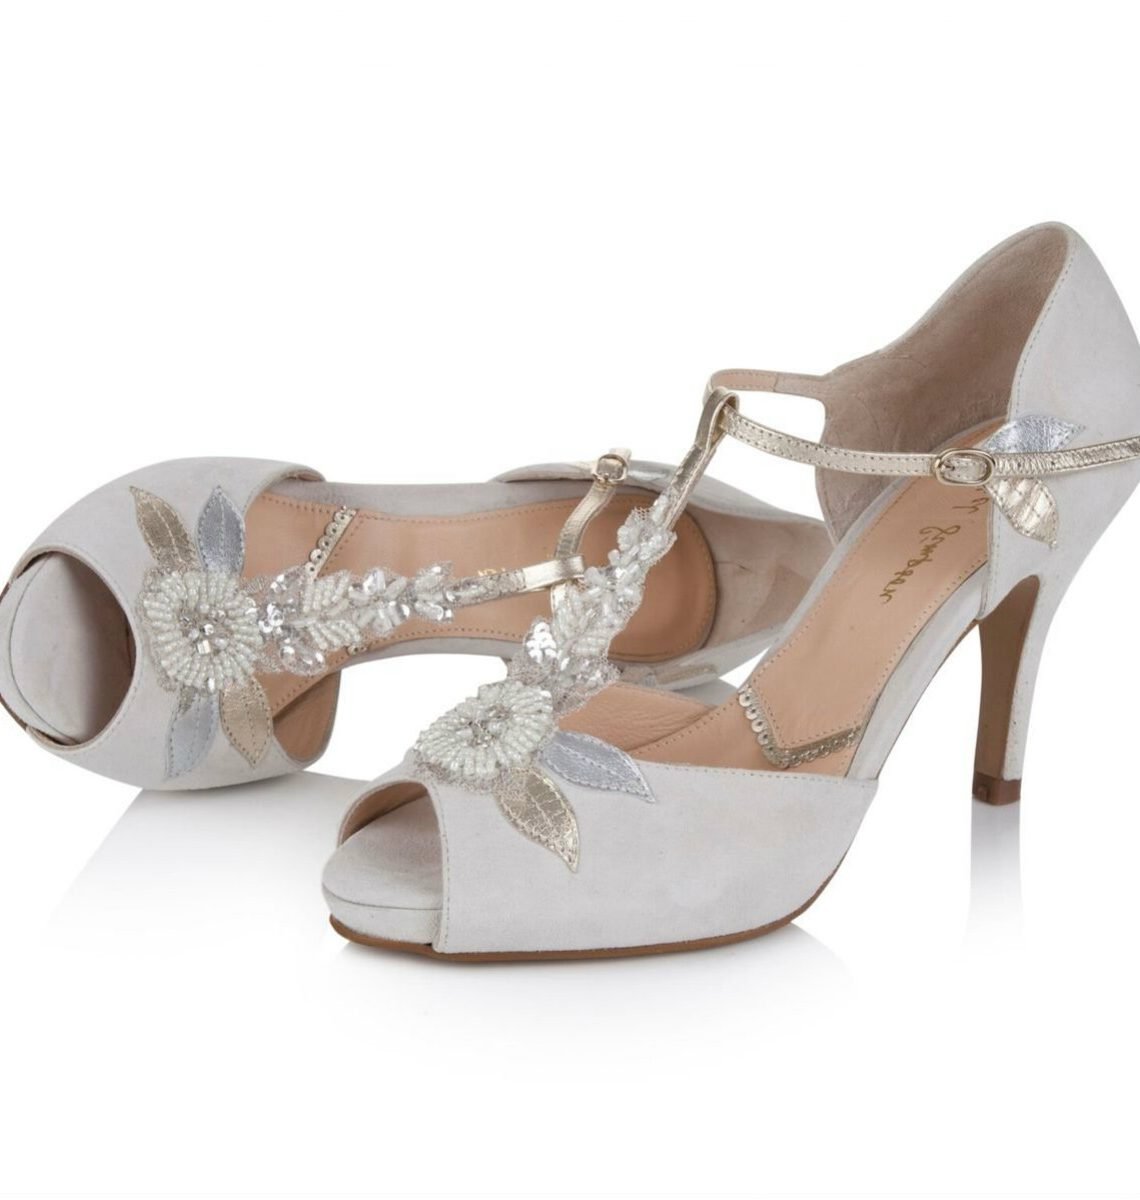 Hermione by Rachel Simpson Ivory Suede Embellished T-Bar Vintage Designer Wedding or Occasion Shoes